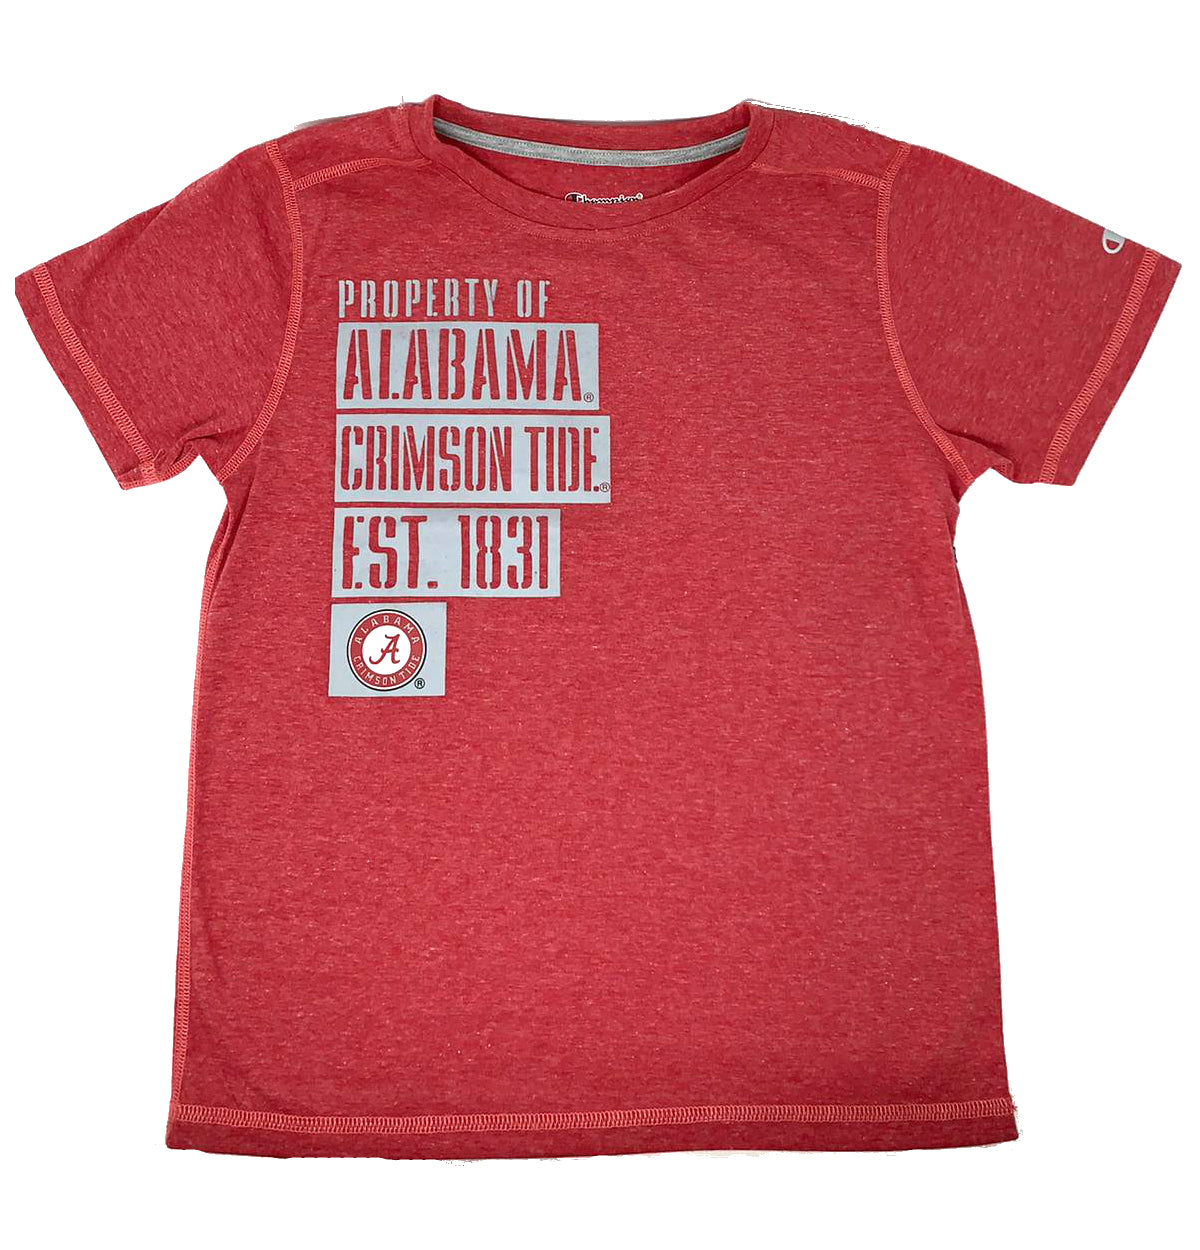 Alabama Crimson Tide Athletic Department Youth T-Shirt